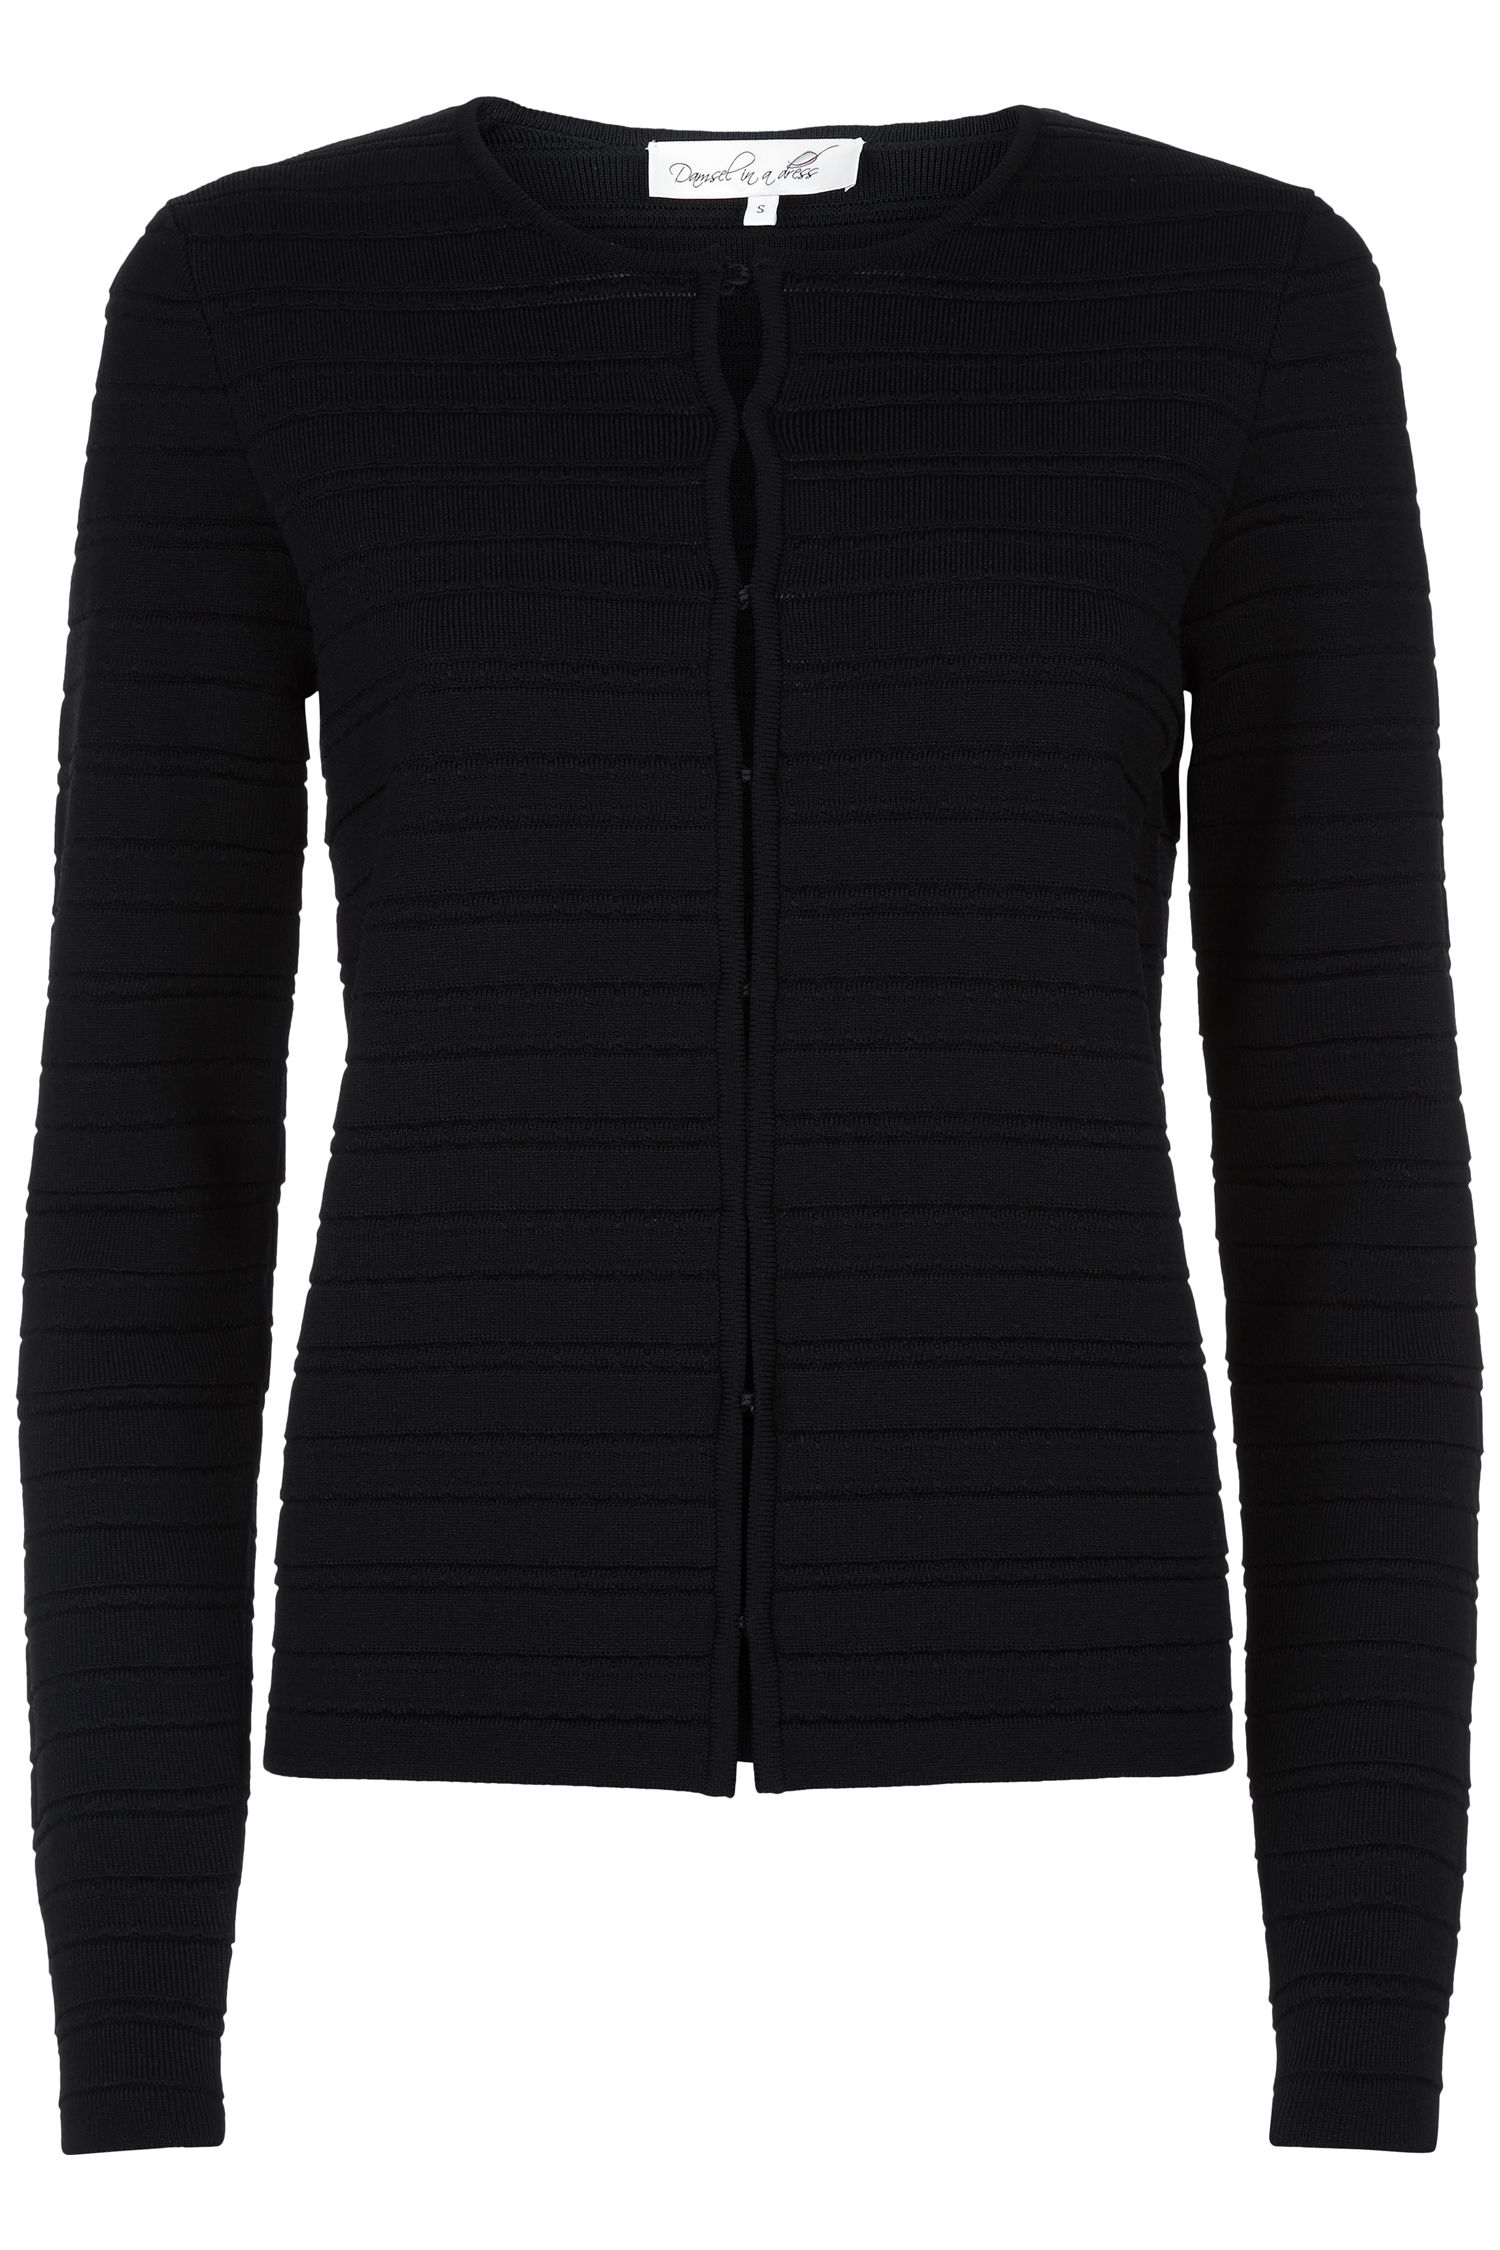 Damsel in a Dress Delia Knitted Jacket, Black